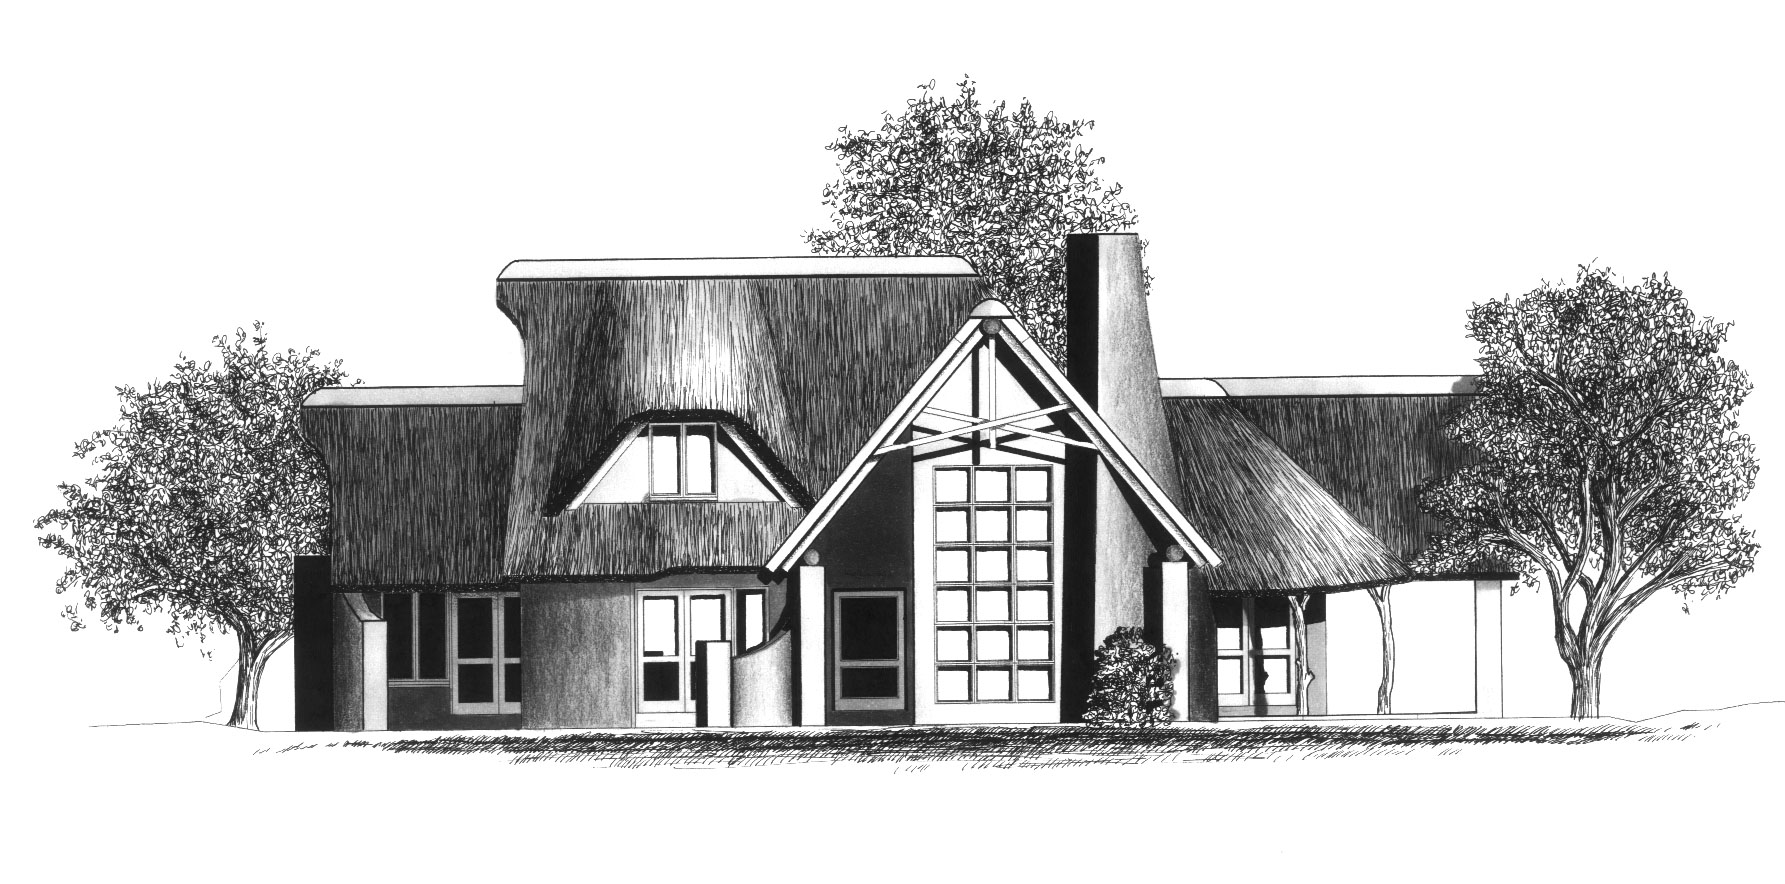 House plans and design architectural house plans botswana Architectural house plan styles